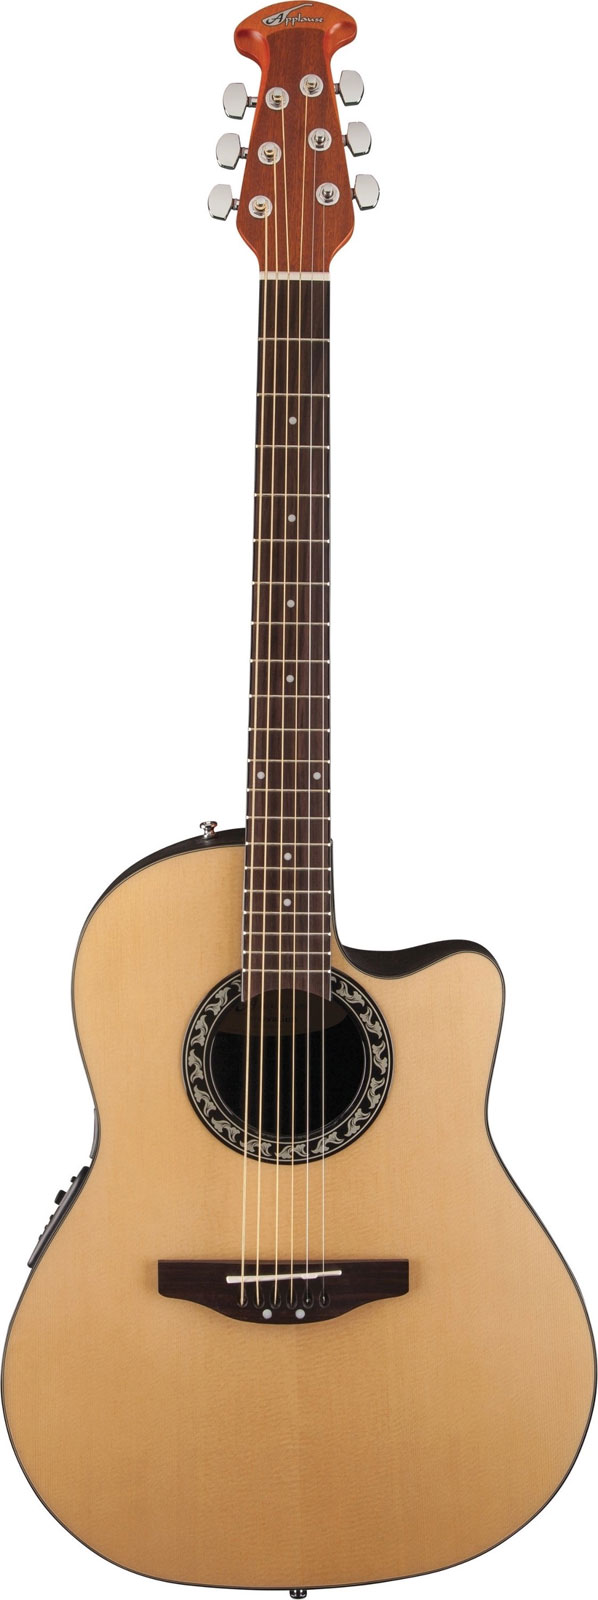 OVATION APPLAUSE BALLADEER AB244 NATURAL